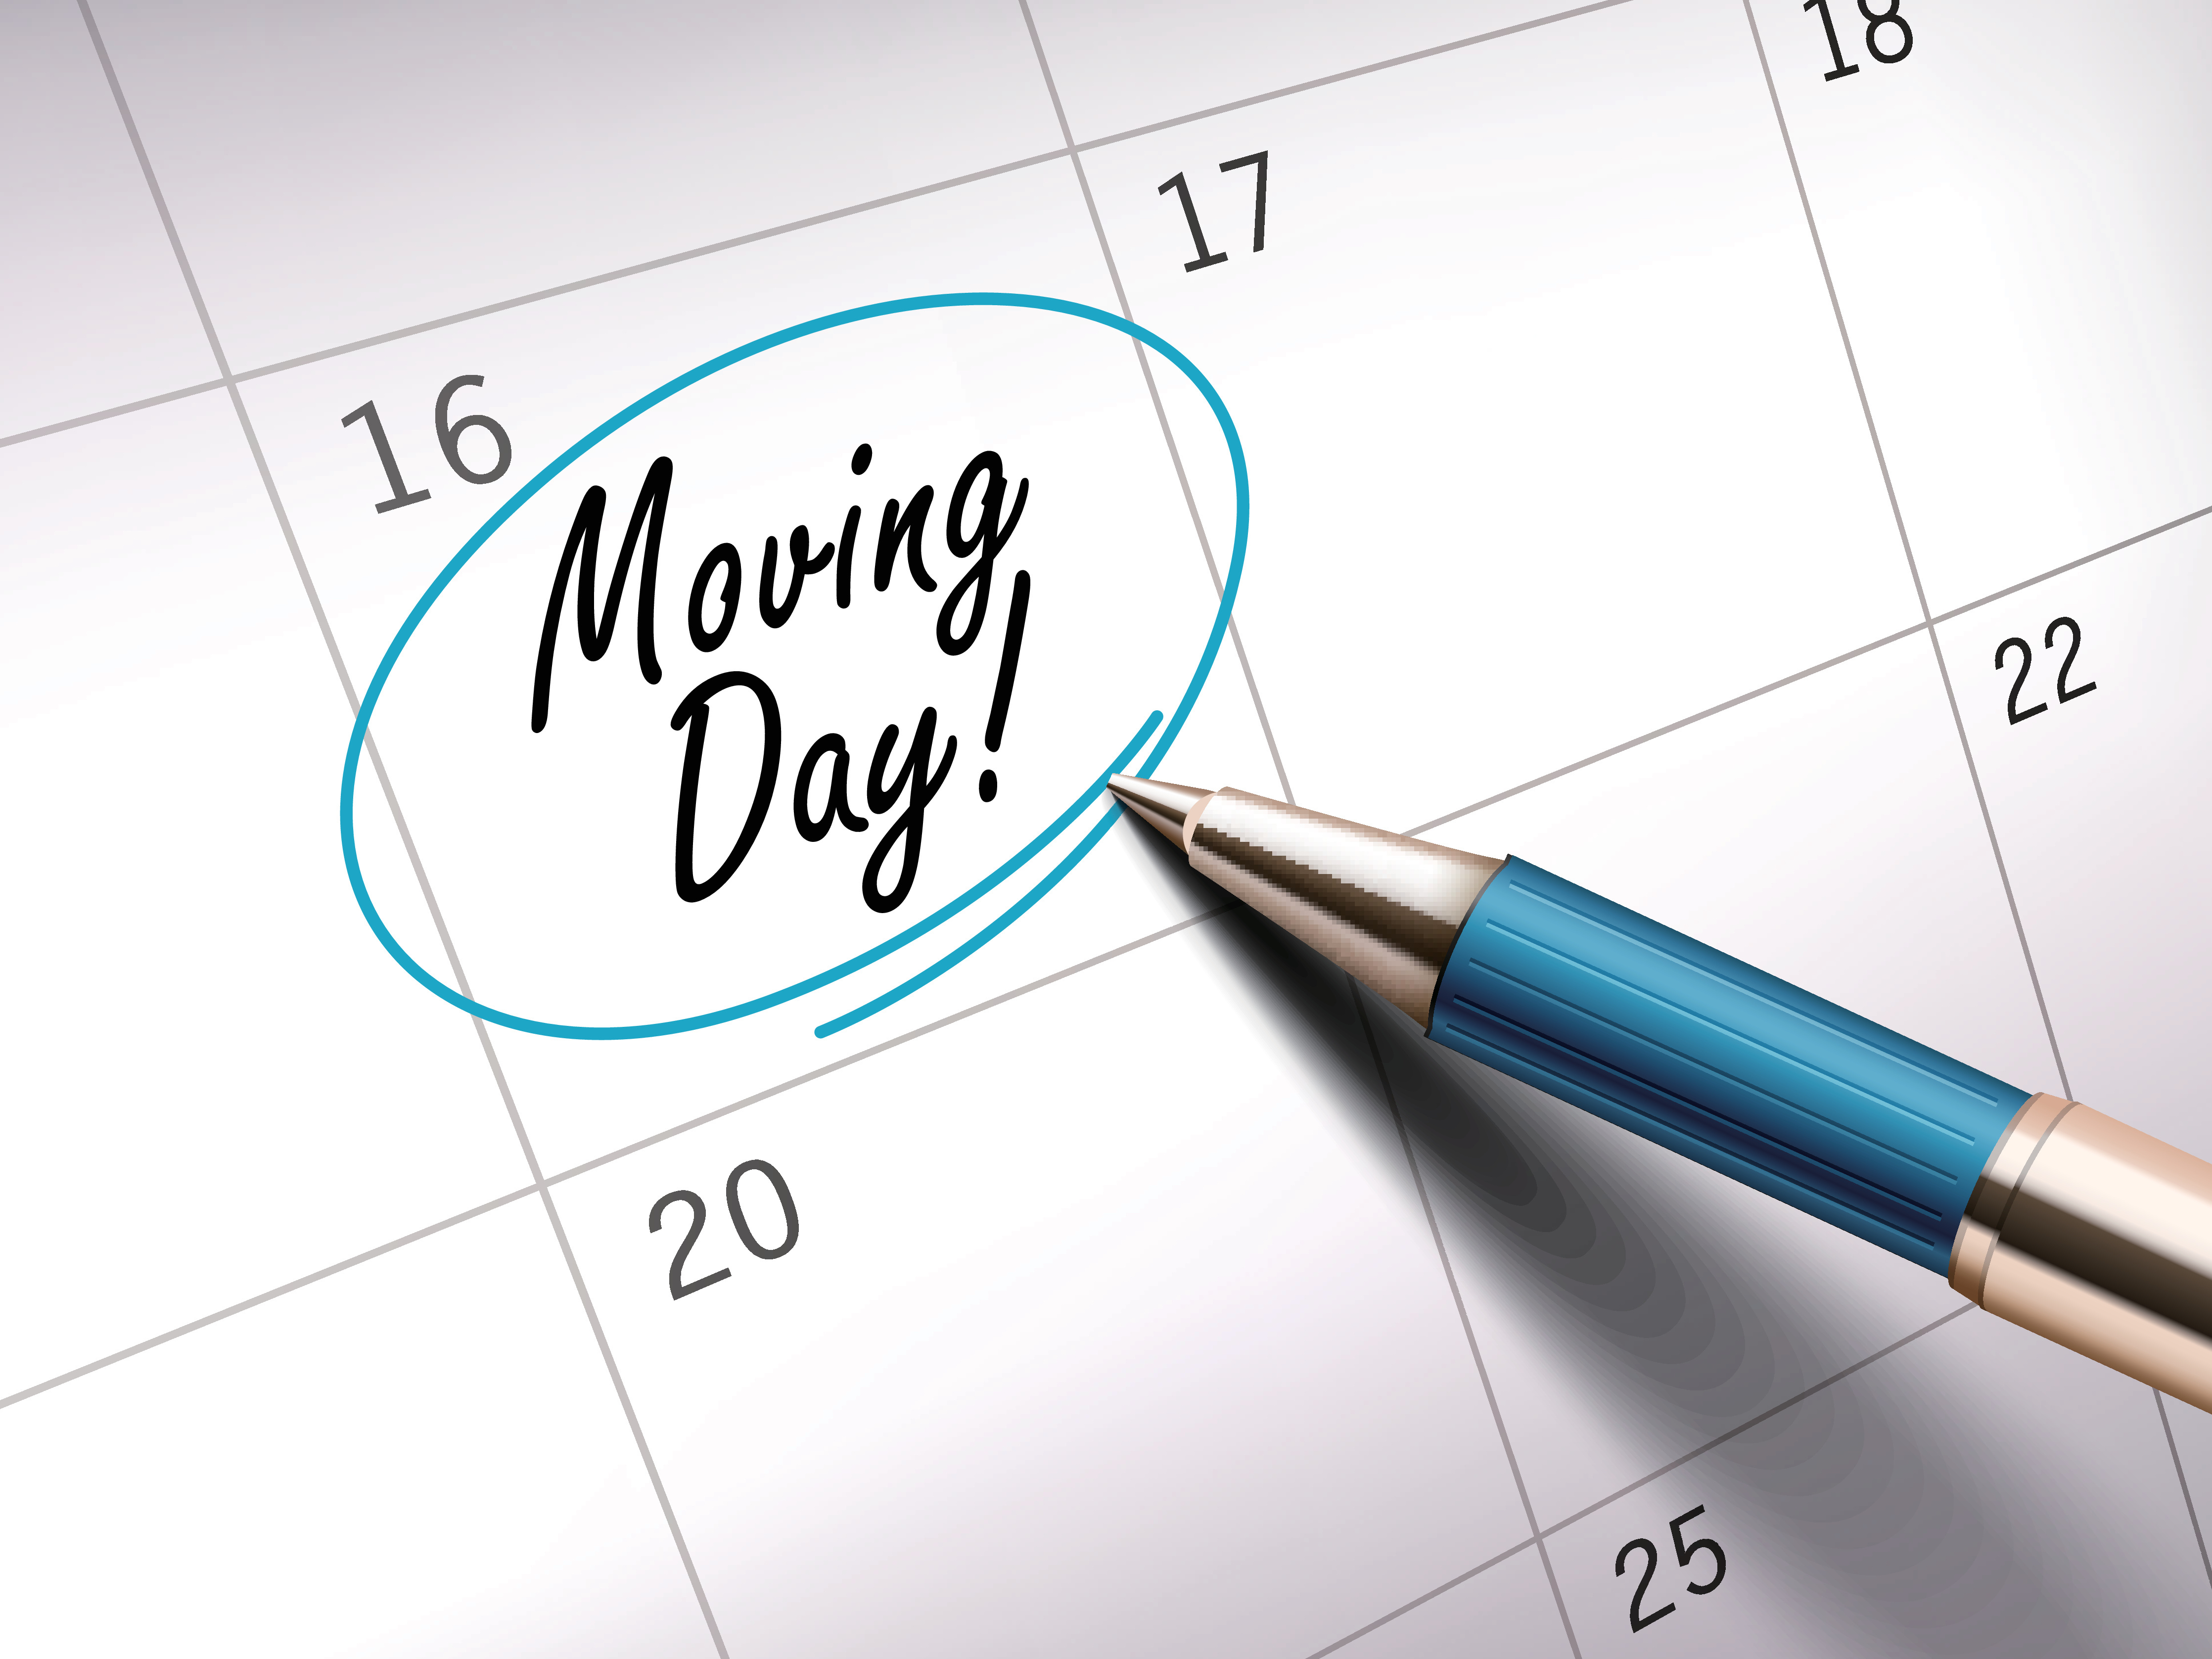 Moving day on calendar